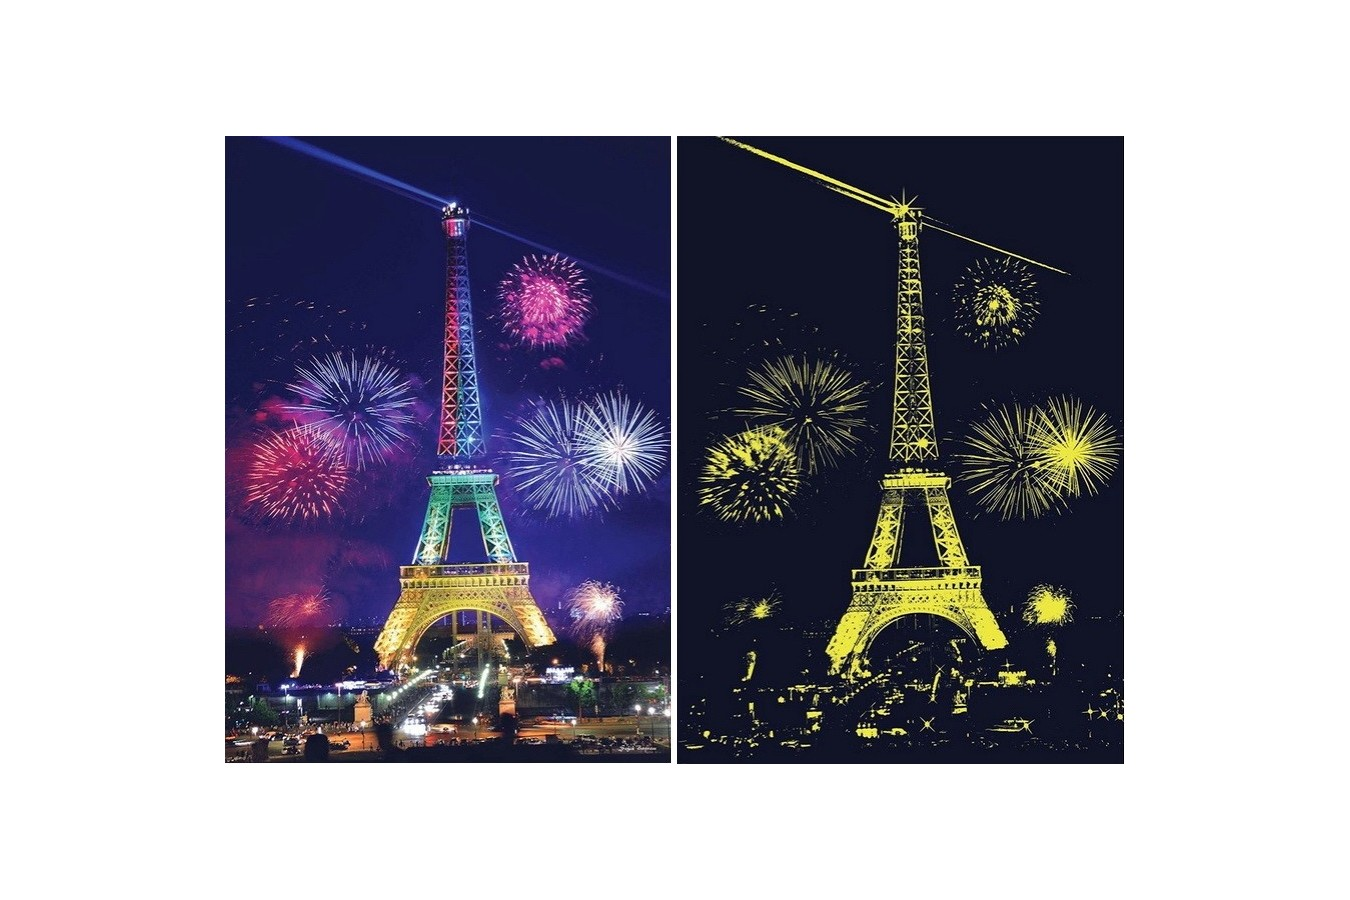 Puzzle Anatolian - Eiffel Tower, 1000 piese, fosforescent (1902)